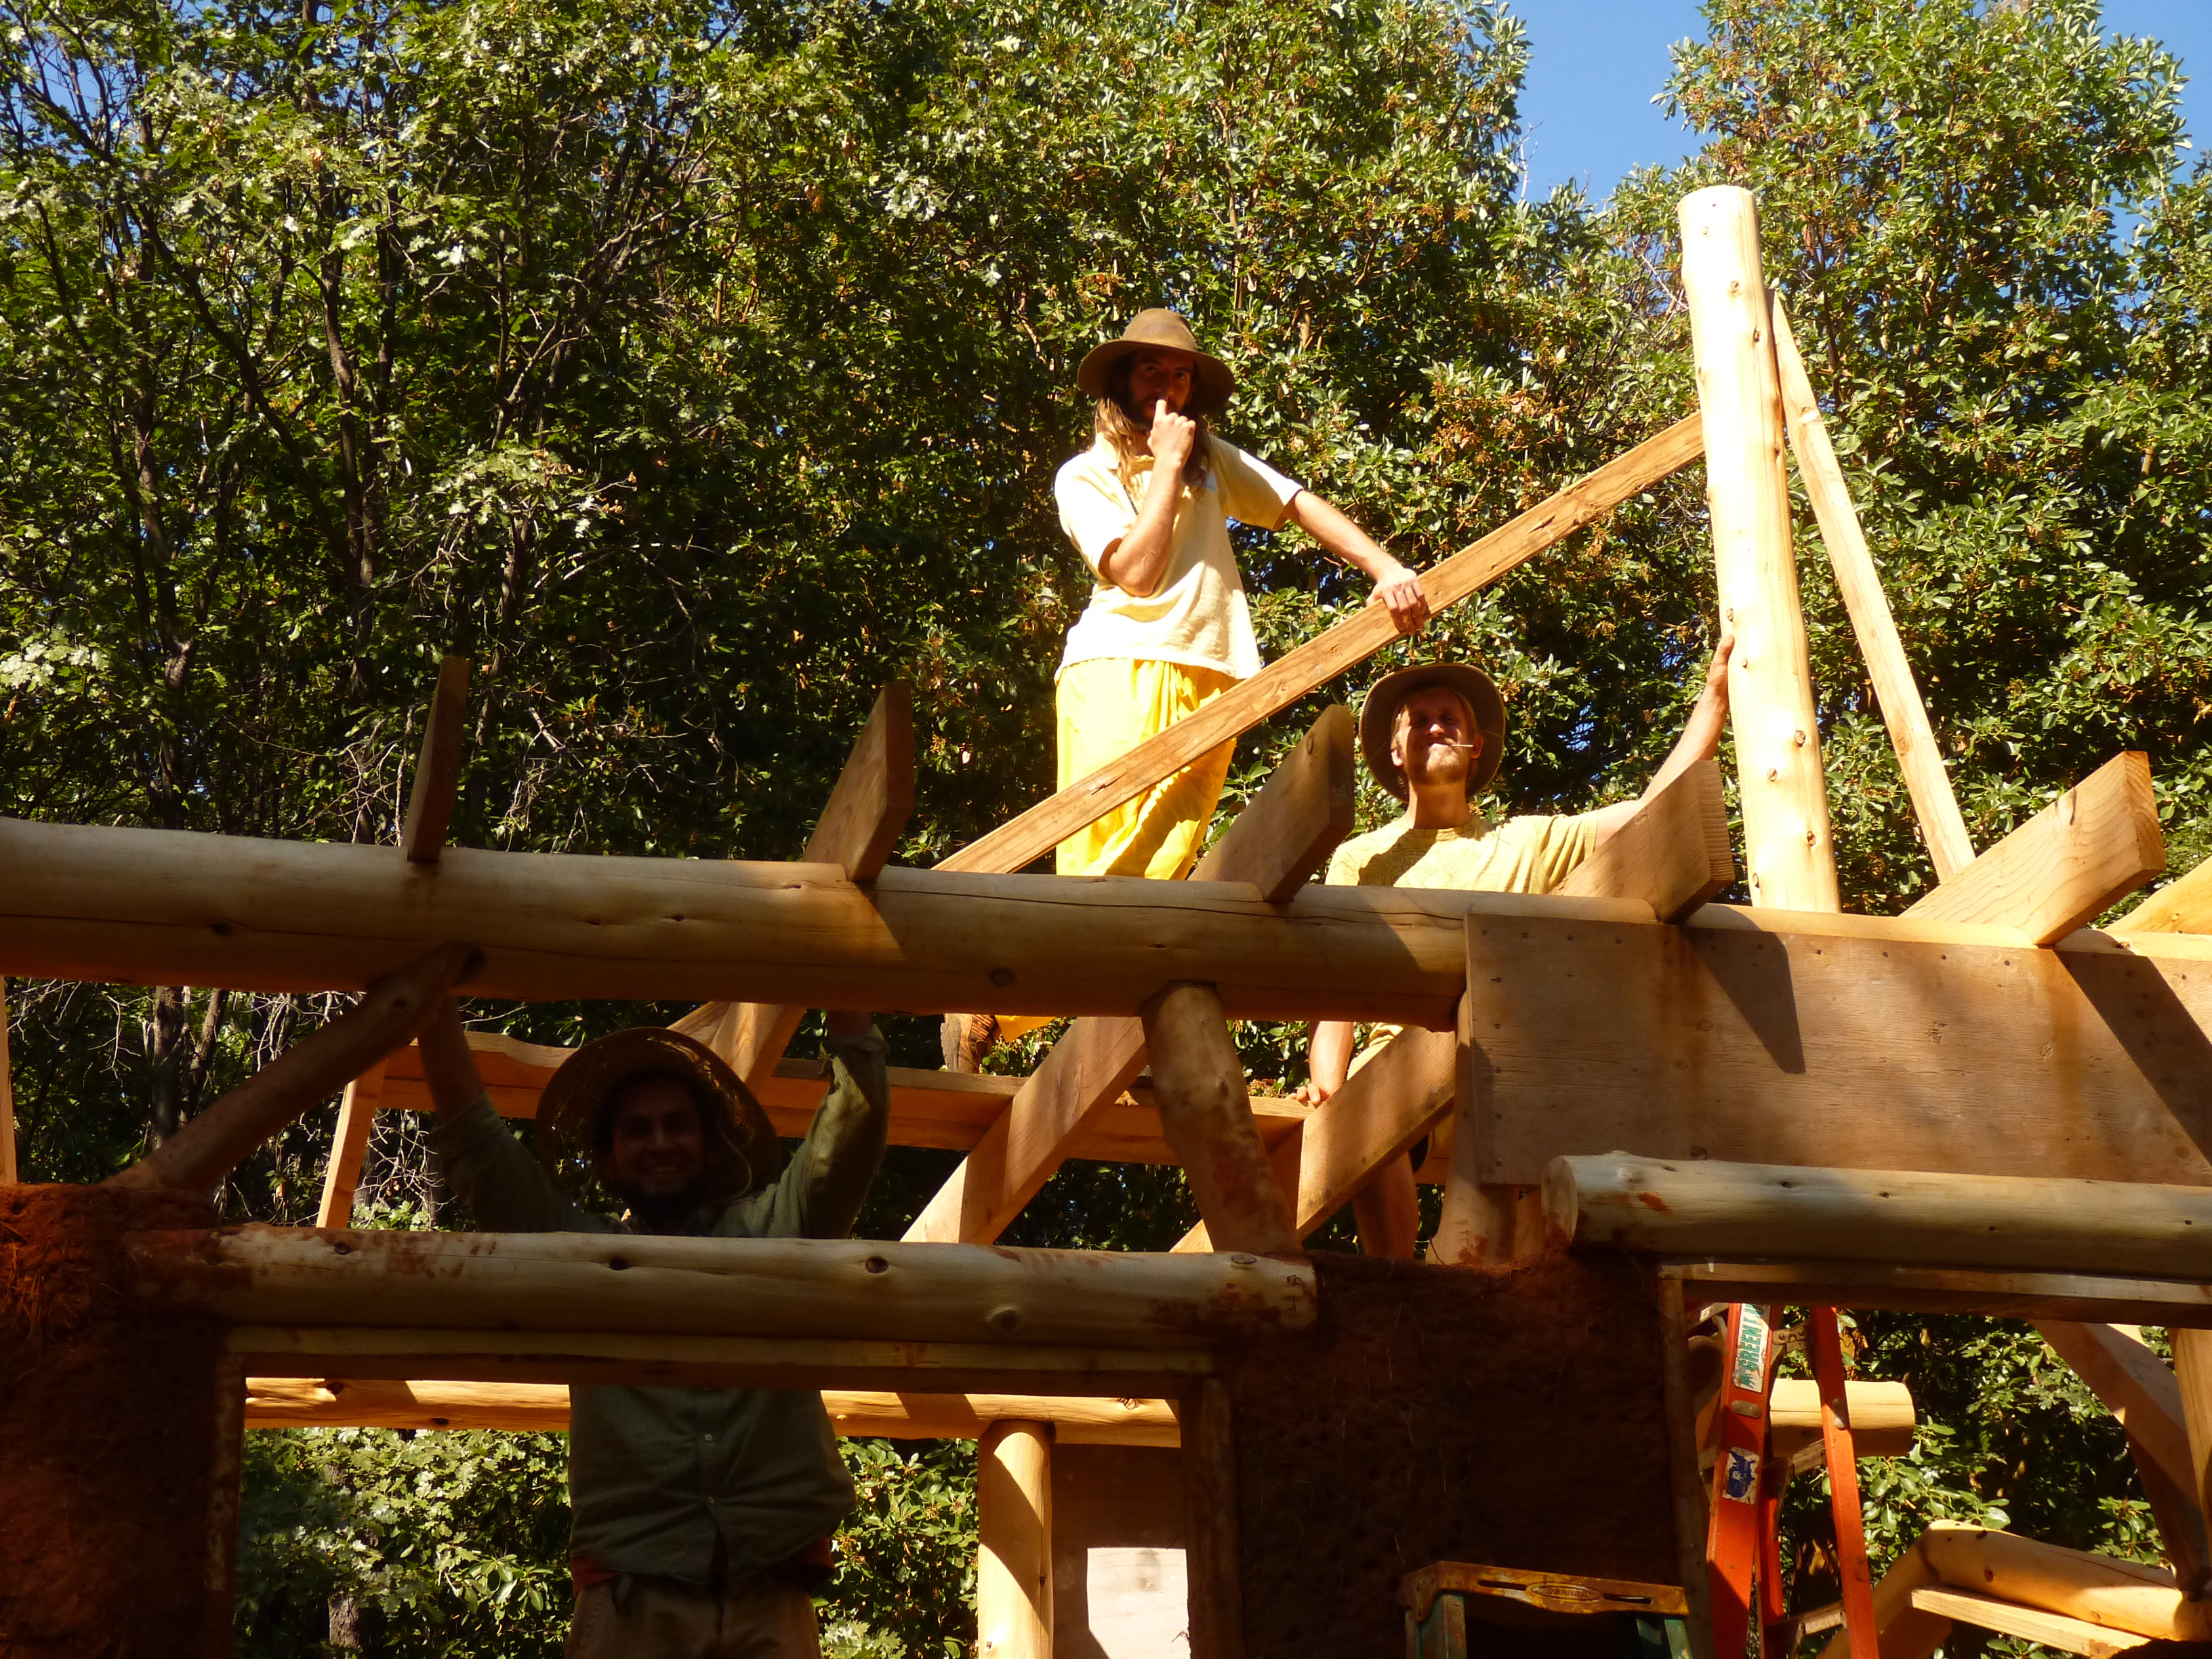 The King Cedar Post is up, the roof is on its way...